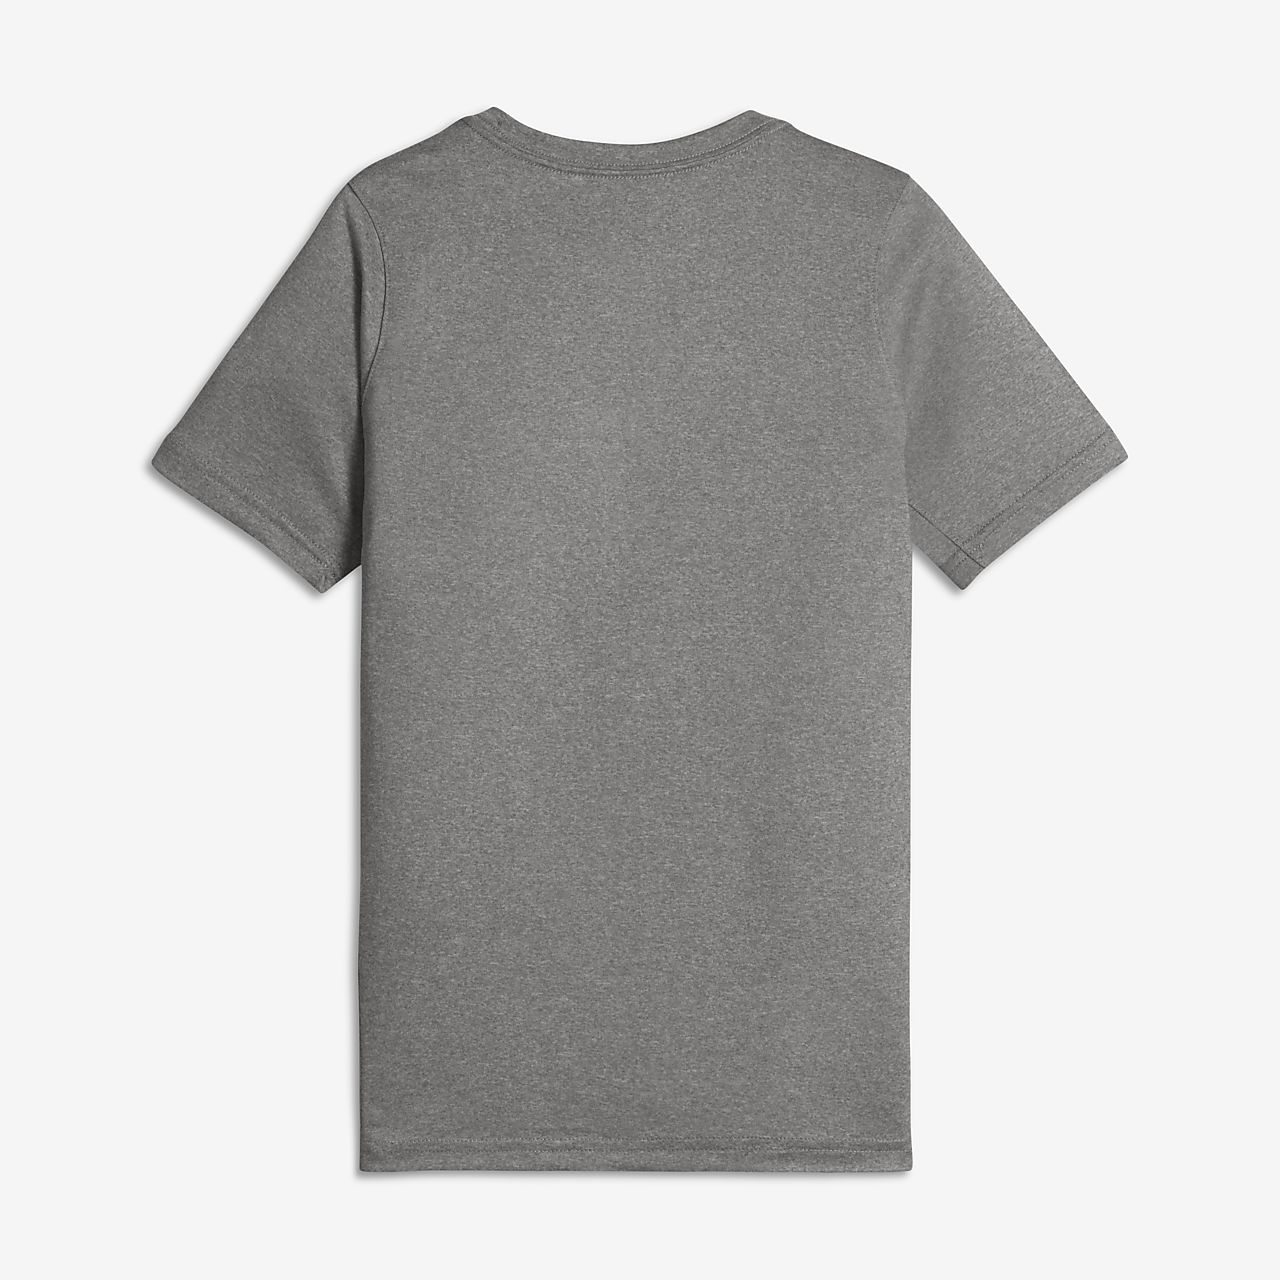 Men's Clothing Clothing, Shoes & Accessories 100% True Nike Mens Dri Fit T Shirt Basketball Xl Attractive Designs;